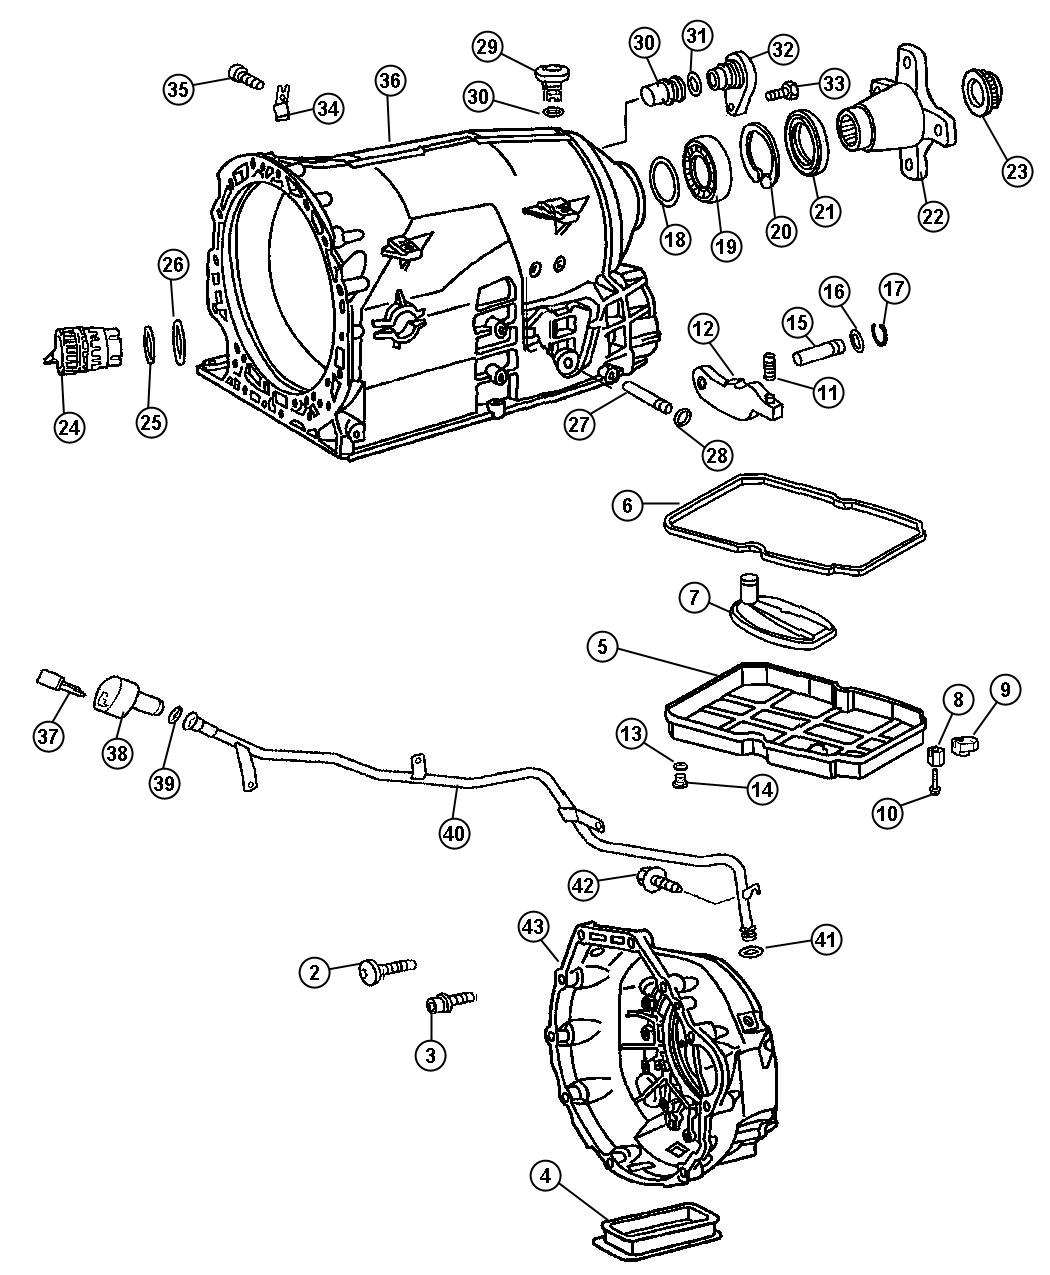 361438894231 additionally ShowAssembly besides ShowAssembly in addition Mopar Nut Hex 5097685aa likewise Showassembly. on genuine dodge sprinter parts